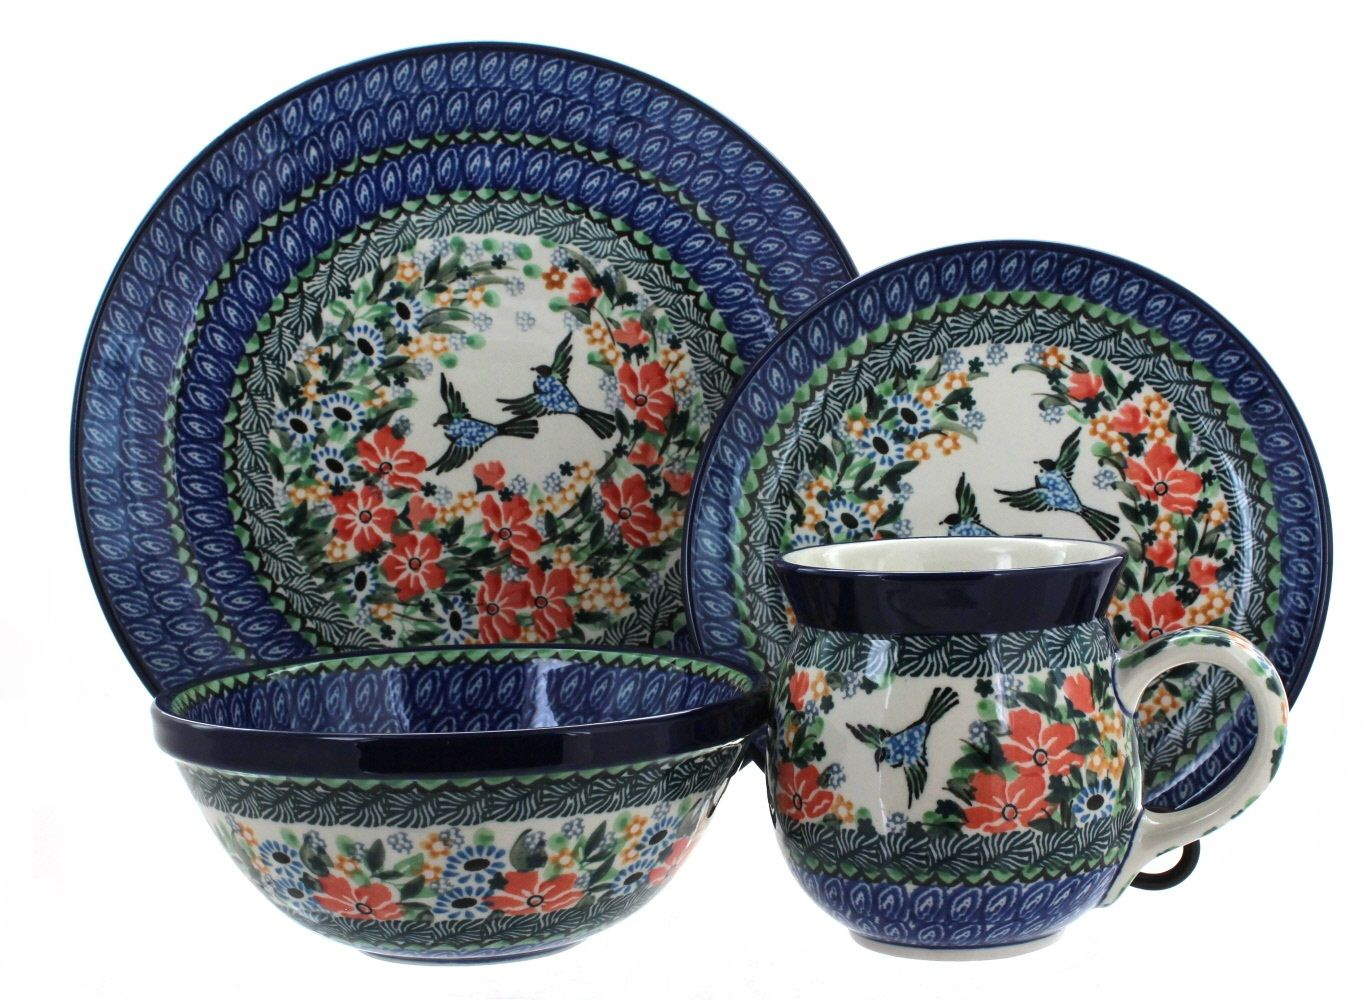 Maria 4 PC Dinner Set - Blue Rose Polish Pottery  sc 1 st  Pinterest : polish dinnerware sets - Pezcame.Com